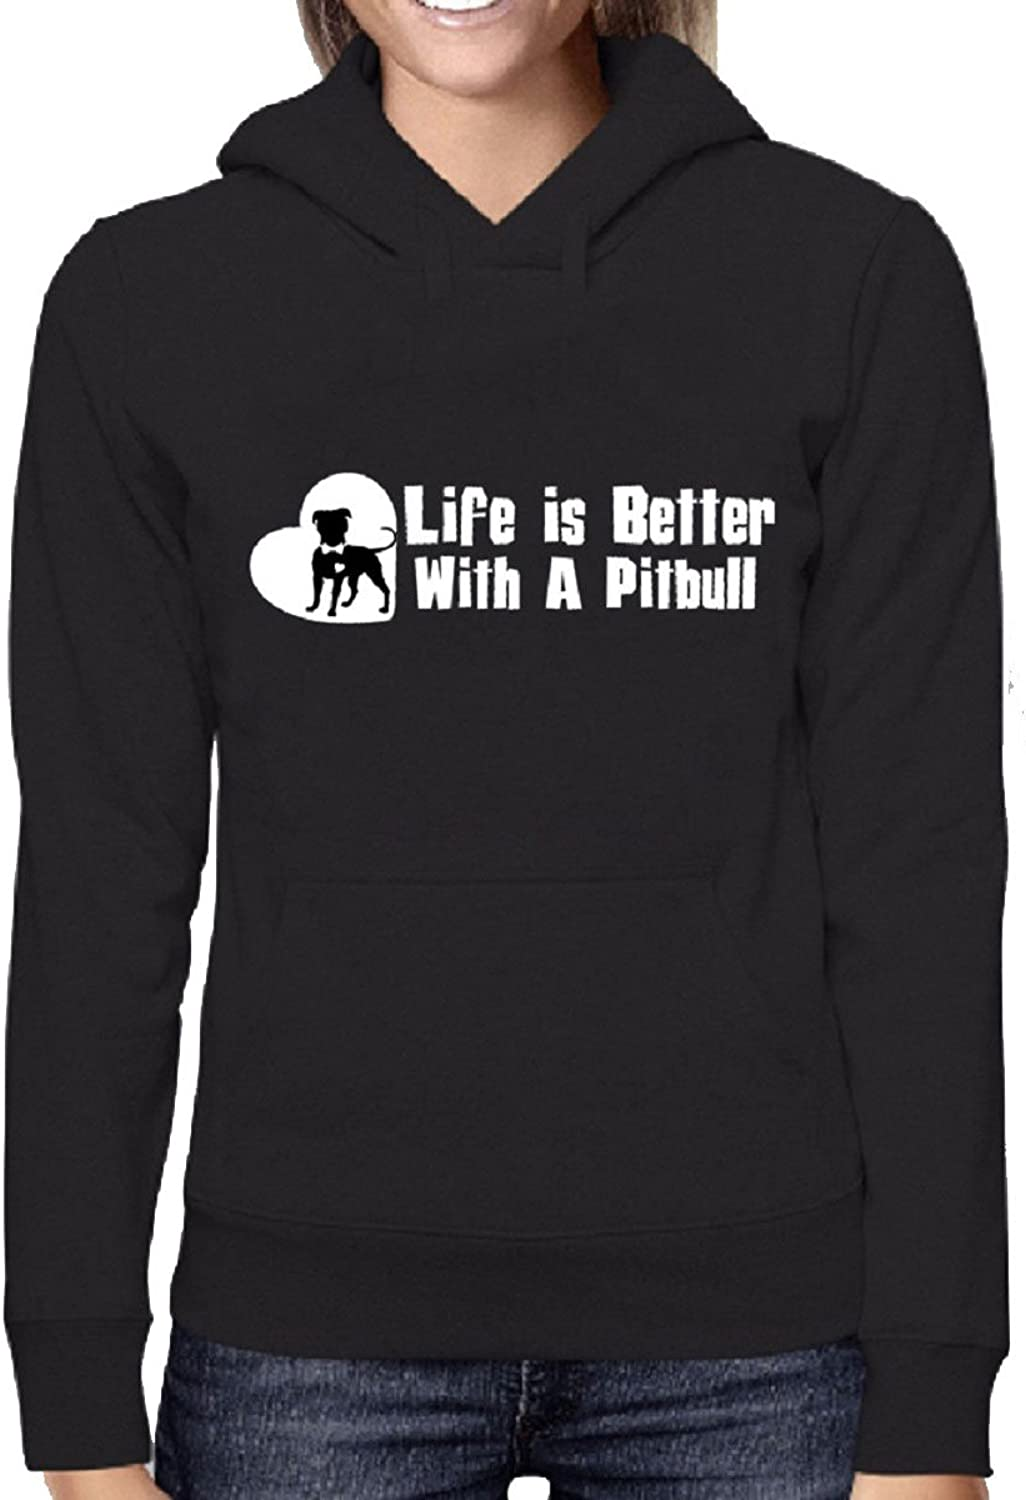 Life is Better with a Pitbull Dog Hoodie Sweatshirt Pit Bull Shirt Hoodie Sweatshirt (Black)